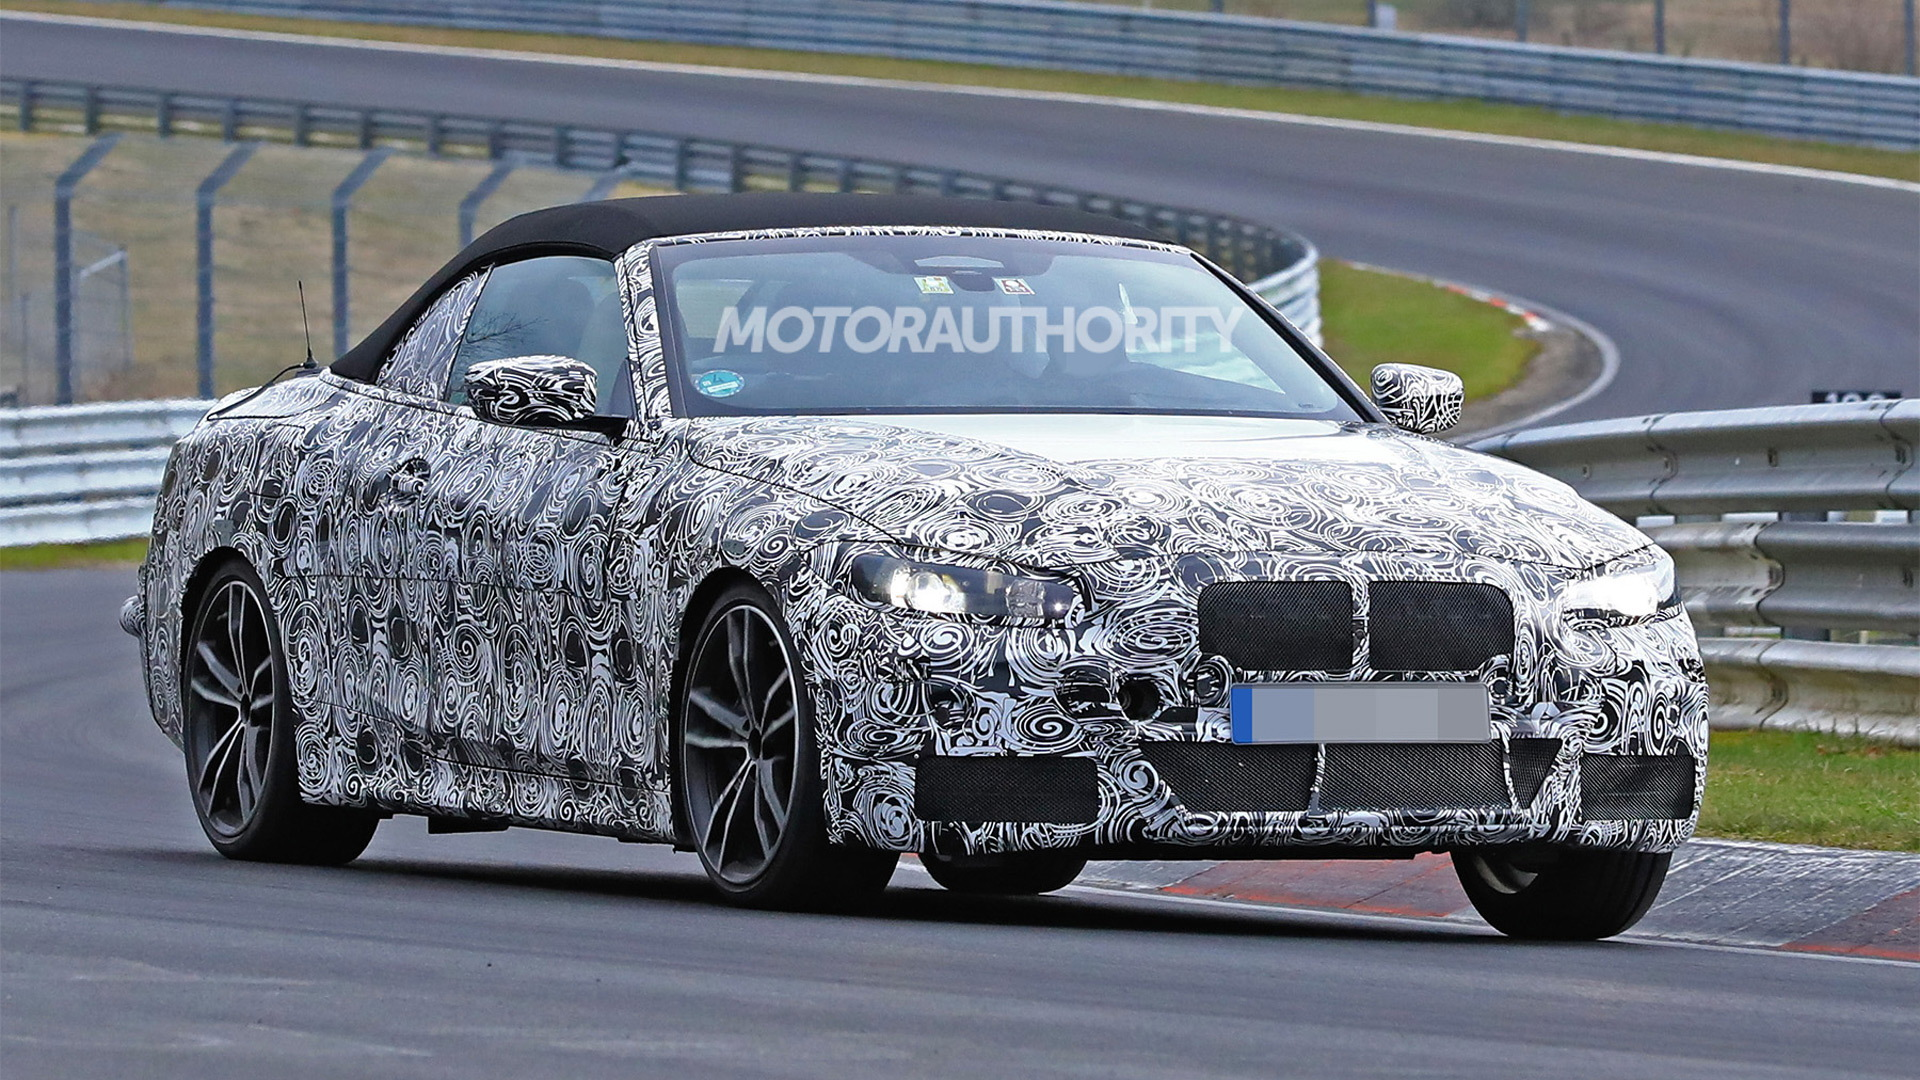 2021 BMW 4-Series Convertible spy shots - Image via S. Baldauf/SB-Medien